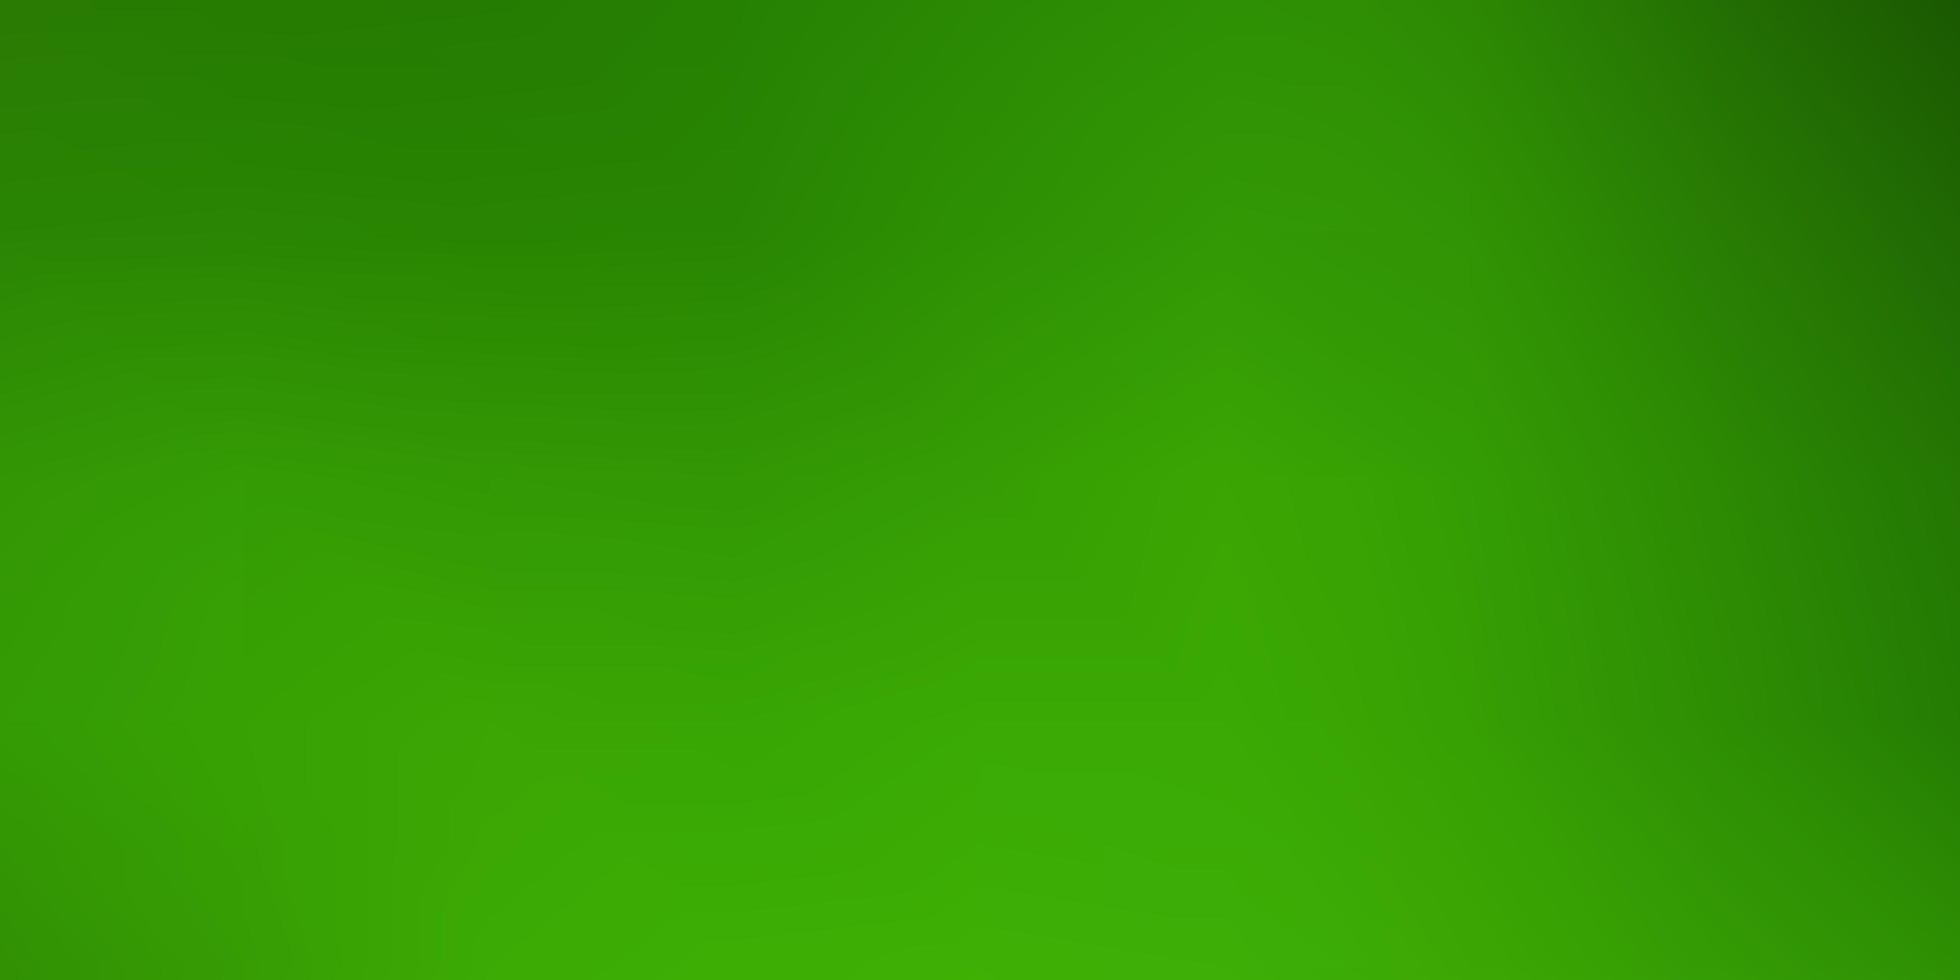 Green abstract blurred background. vector